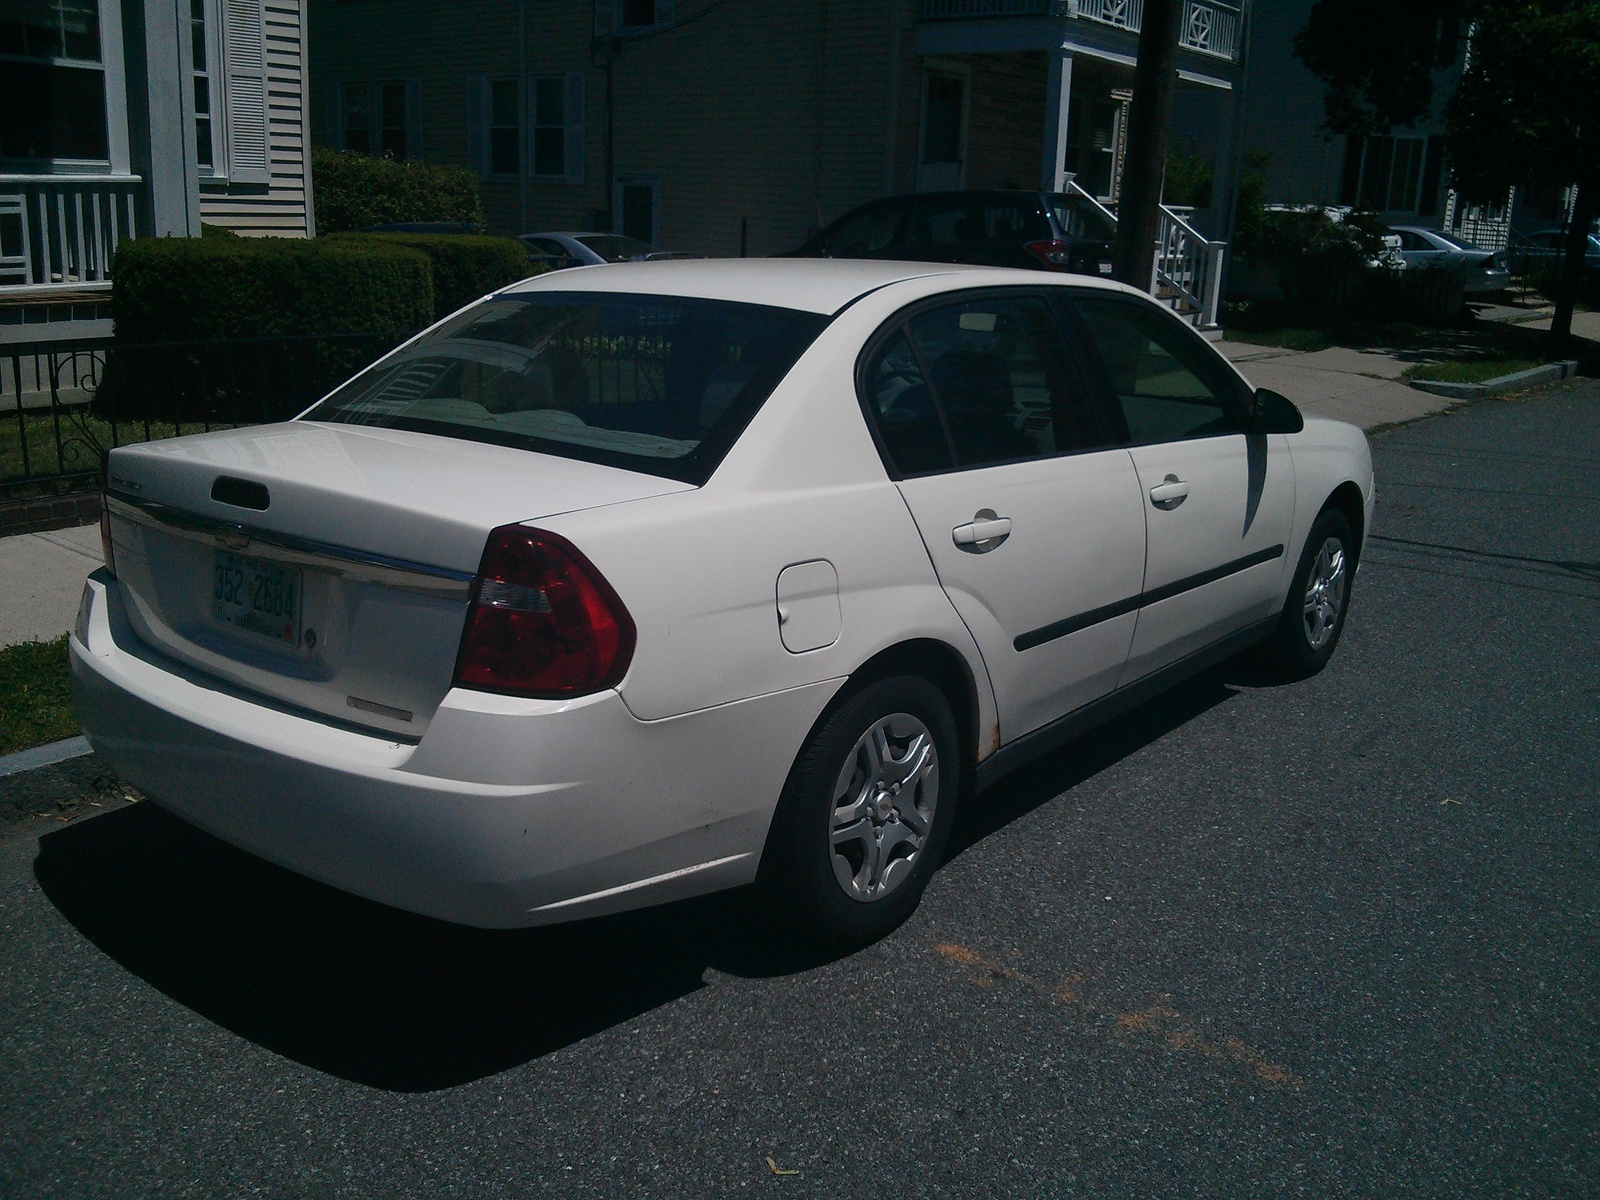 2005 Chevrolet Malibu - Overview